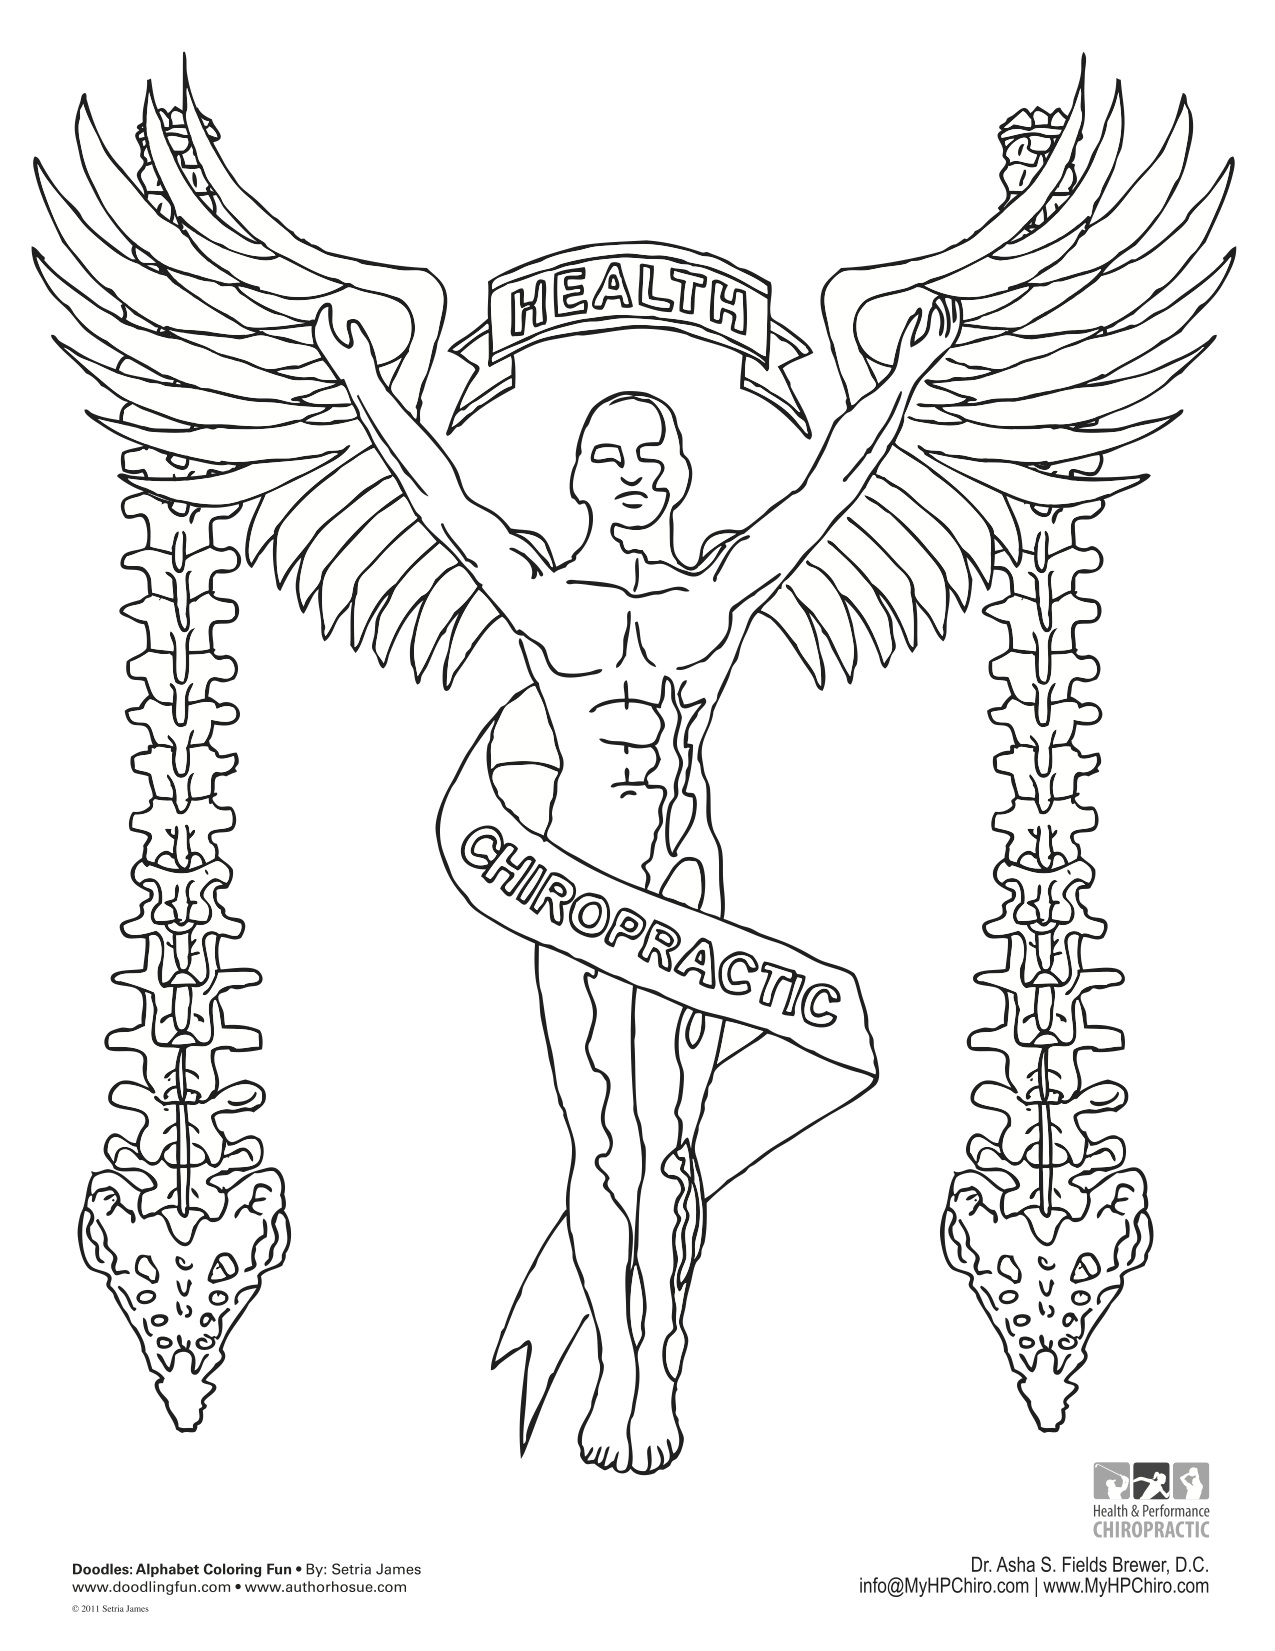 chiropractor coloring pages - photo#31